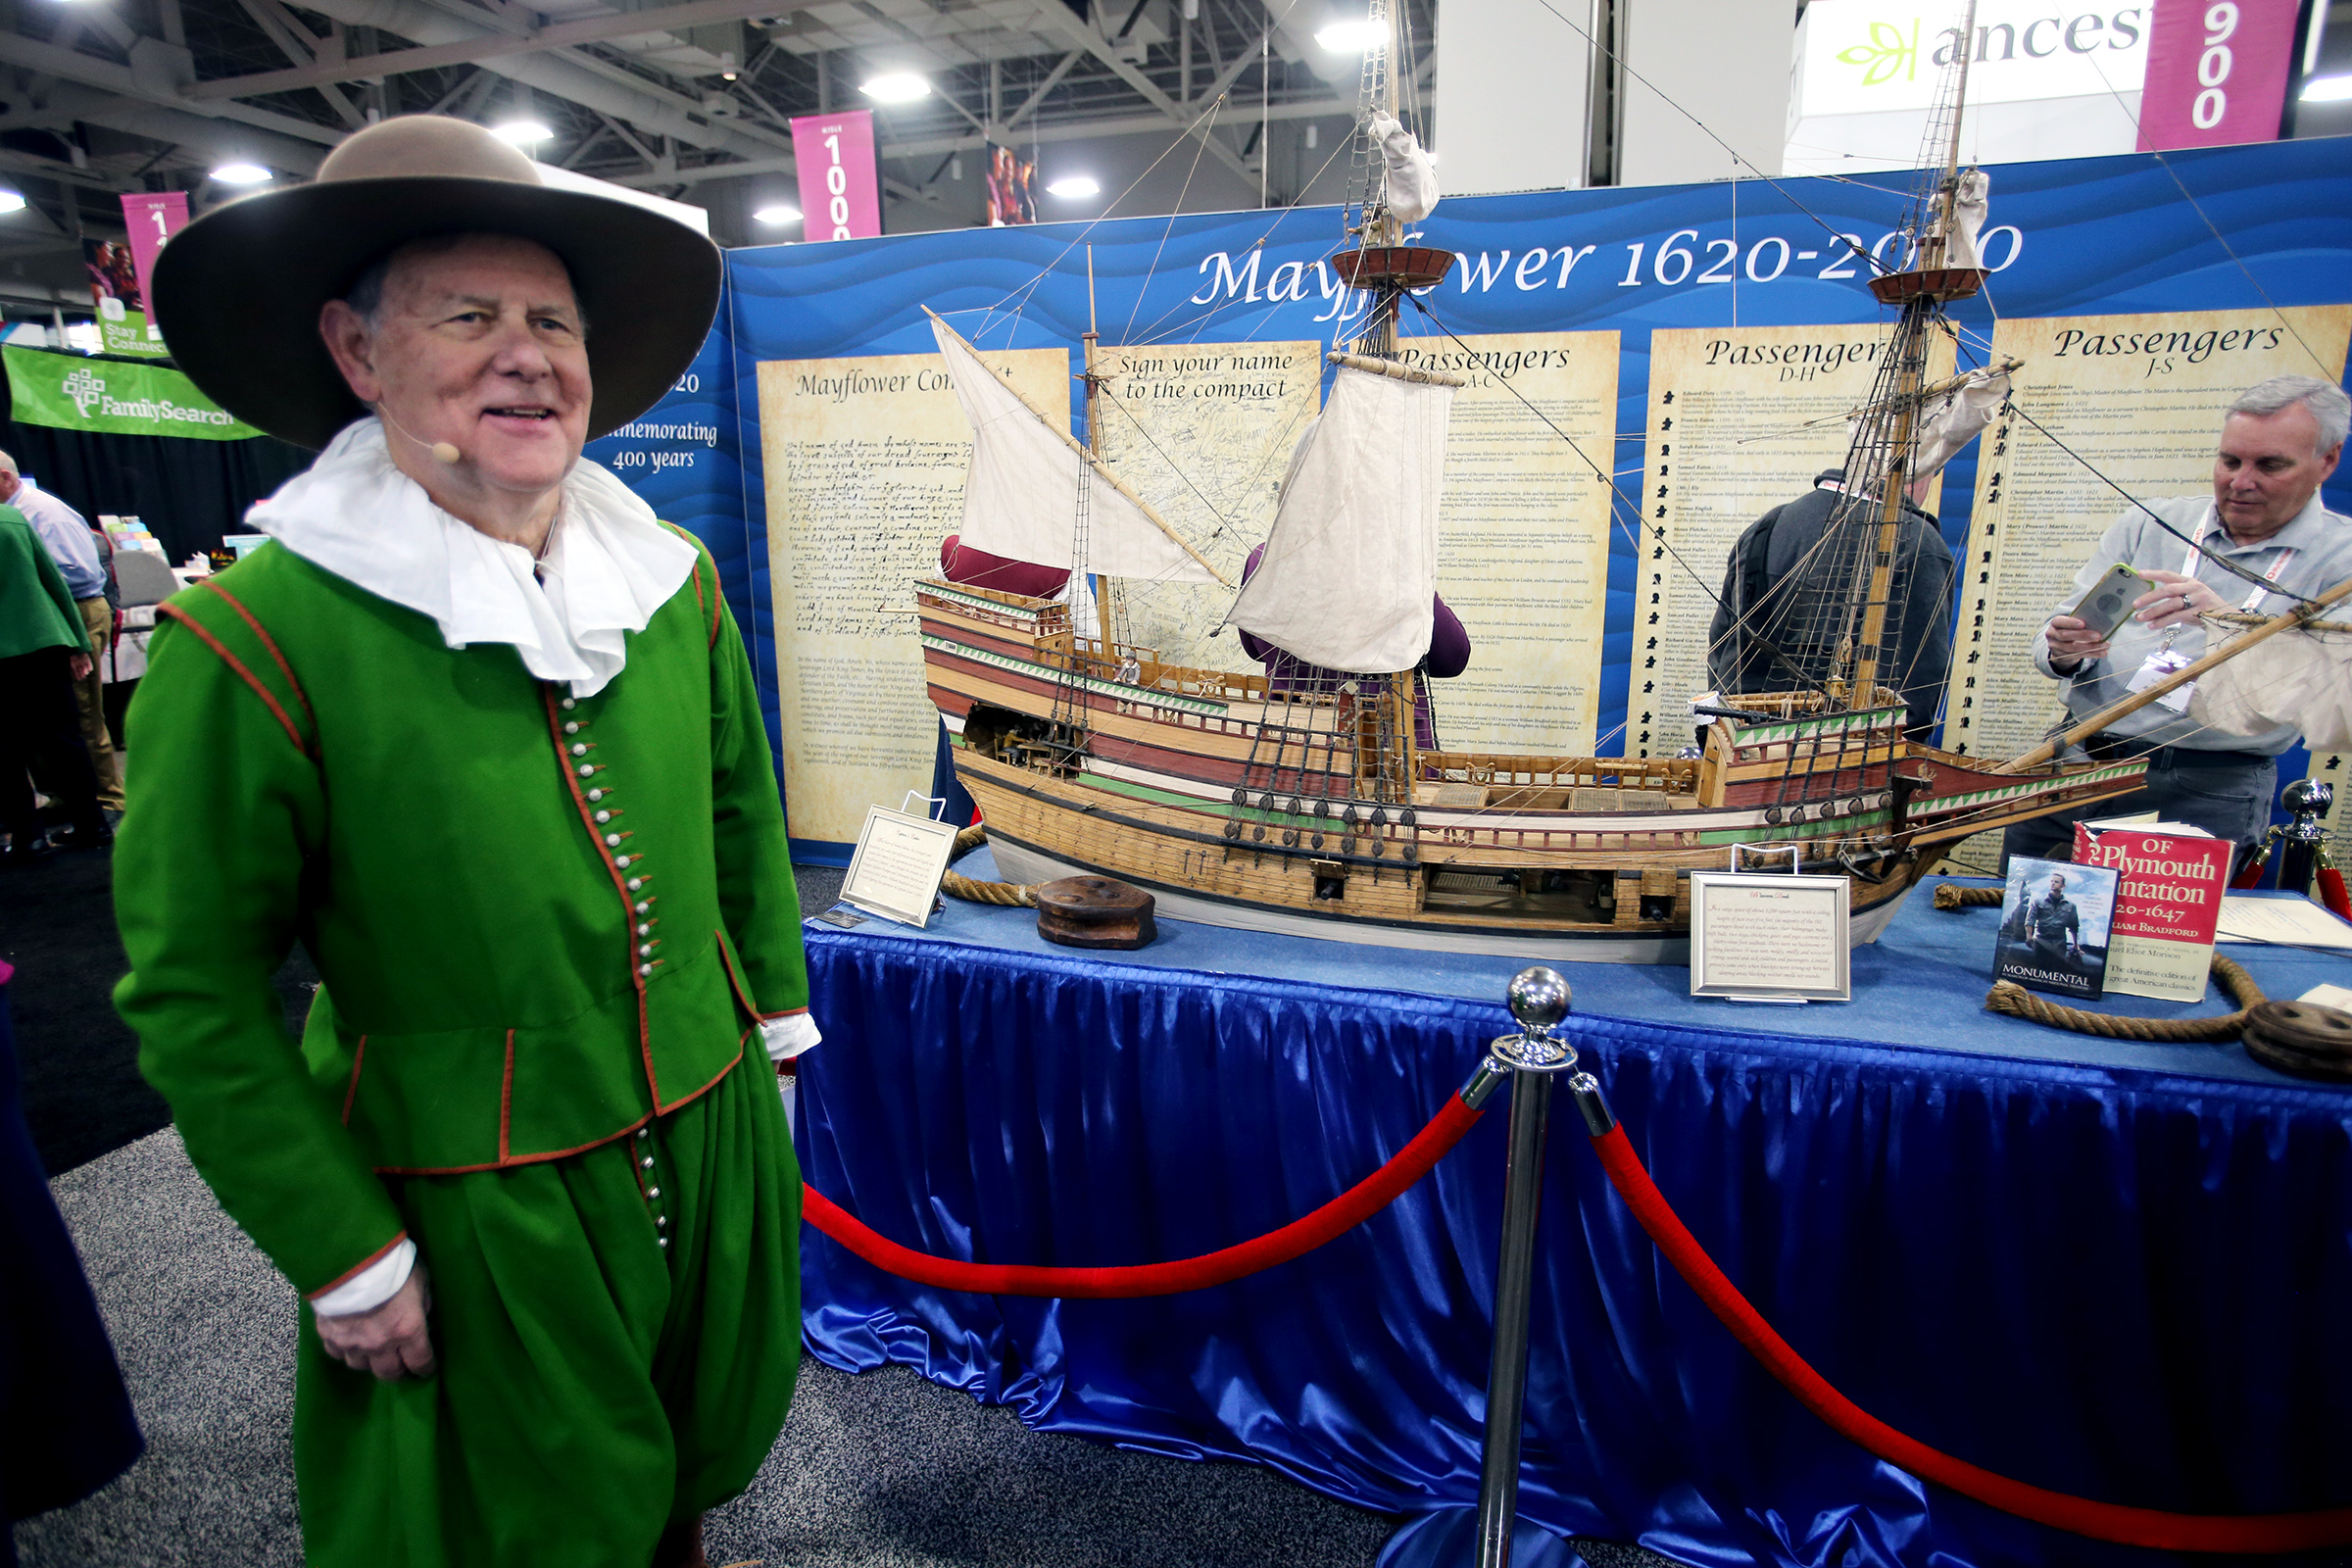 George Garmany, governor general of the General Society of Mayflower Descendants, stands next to a replica of the Mayflower during RootsTech at the Salt Palace Convention Center in Salt Lake City on Friday, Feb. 28, 2020.FamilySearch and the New England Historic Genealogical Society are working together with the General Society of Mayflower Descendants to digitize all of its member applications and publish family trees created from these documented Mayflower lines in order to make them available for free.